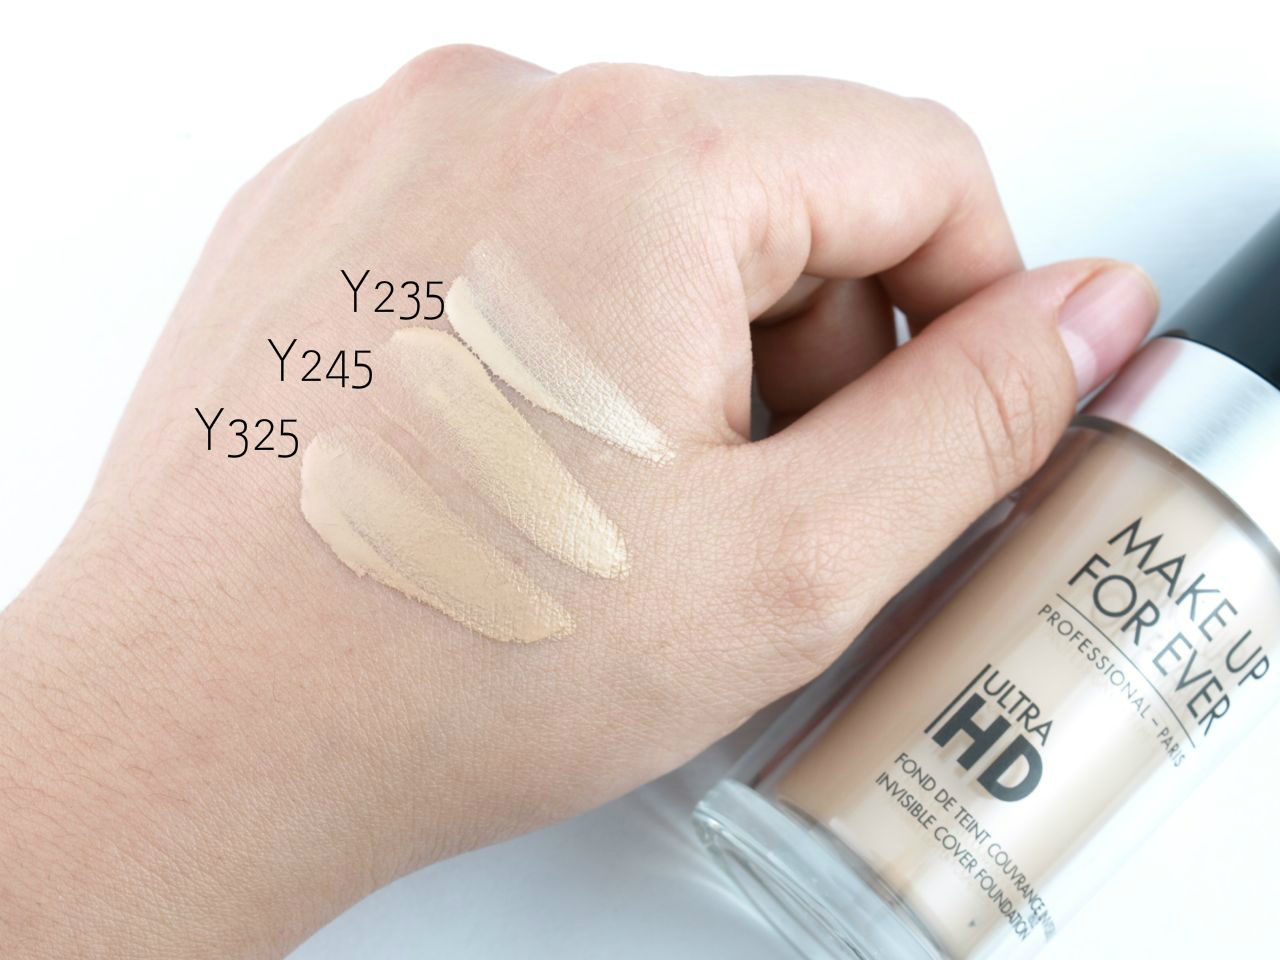 foundations and concealers